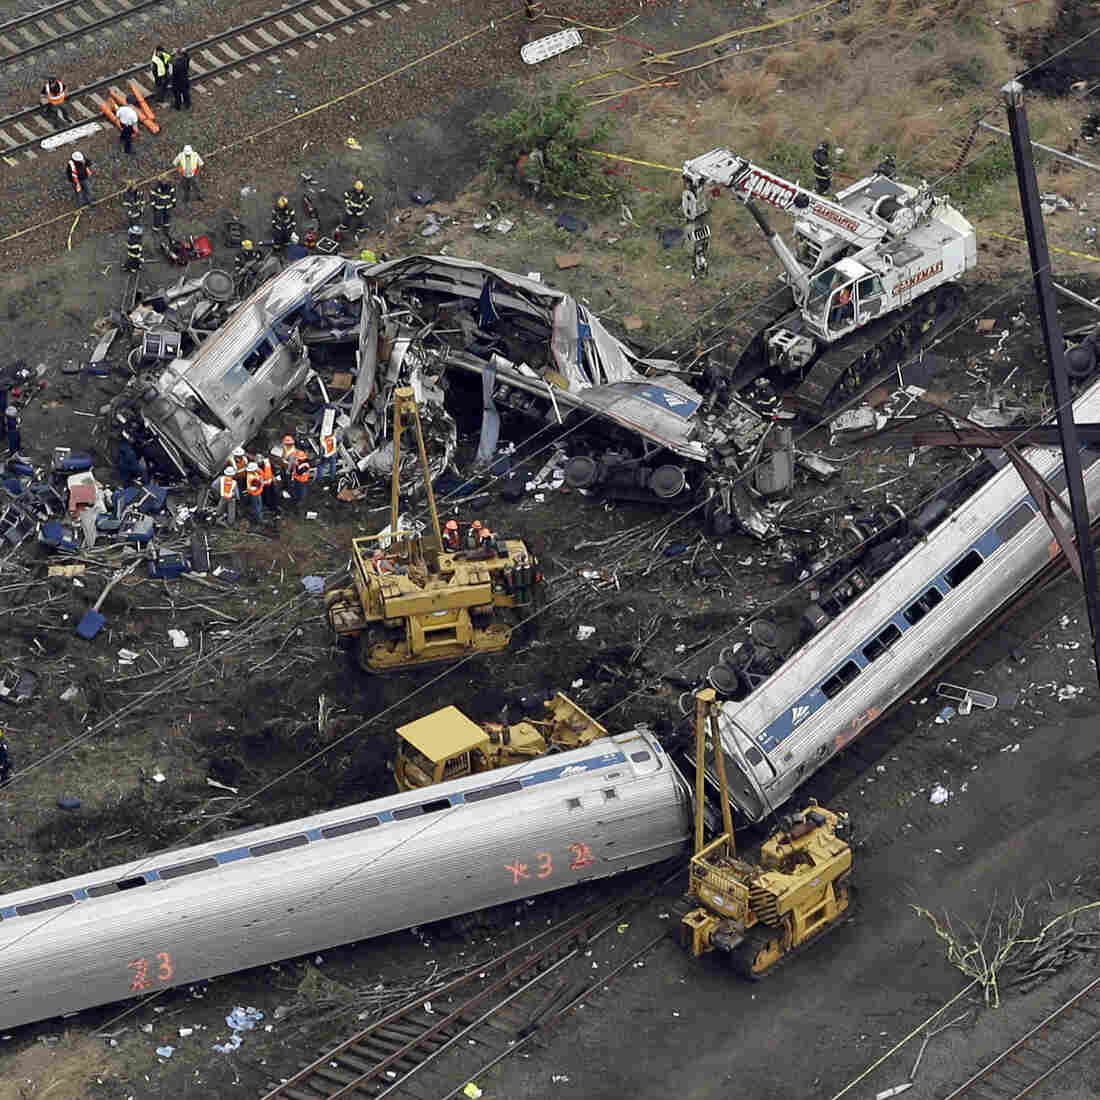 Amtrak Engineer Not On Cellphone Before Philadelphia Derailment, NTSB Says